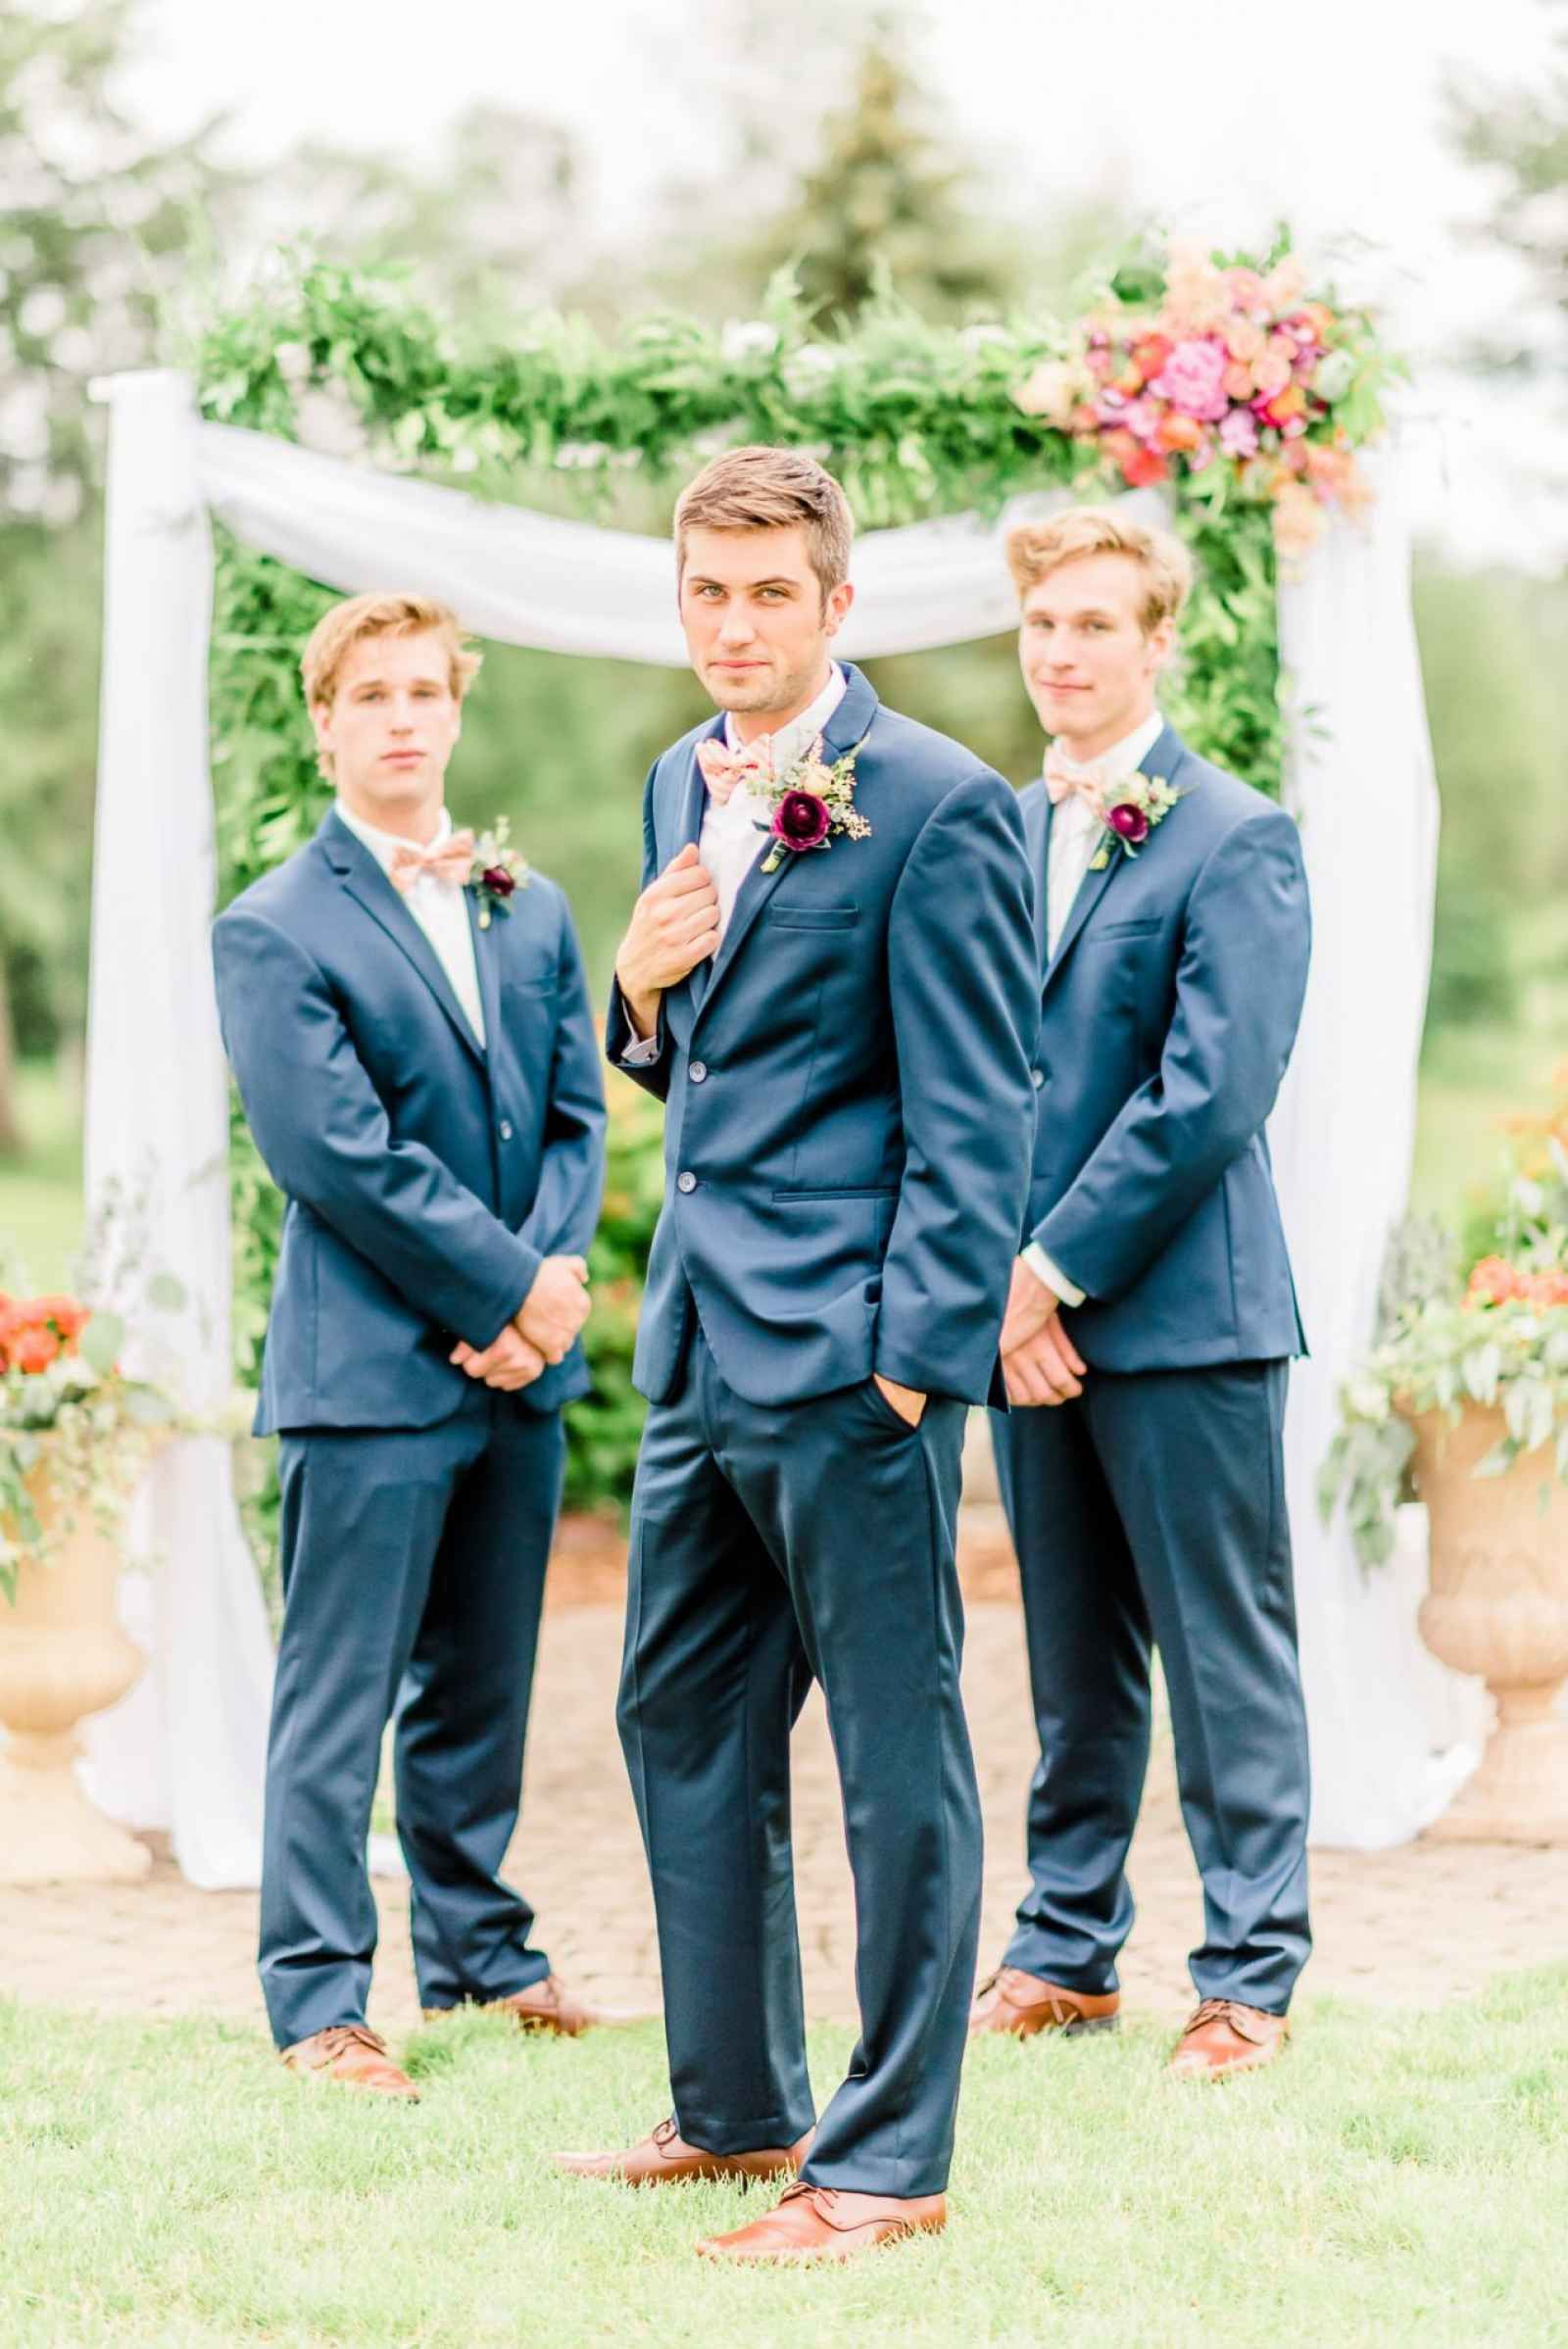 Groom and groomsmen in navy suits - A Bold, Boho Style Shoot in ...